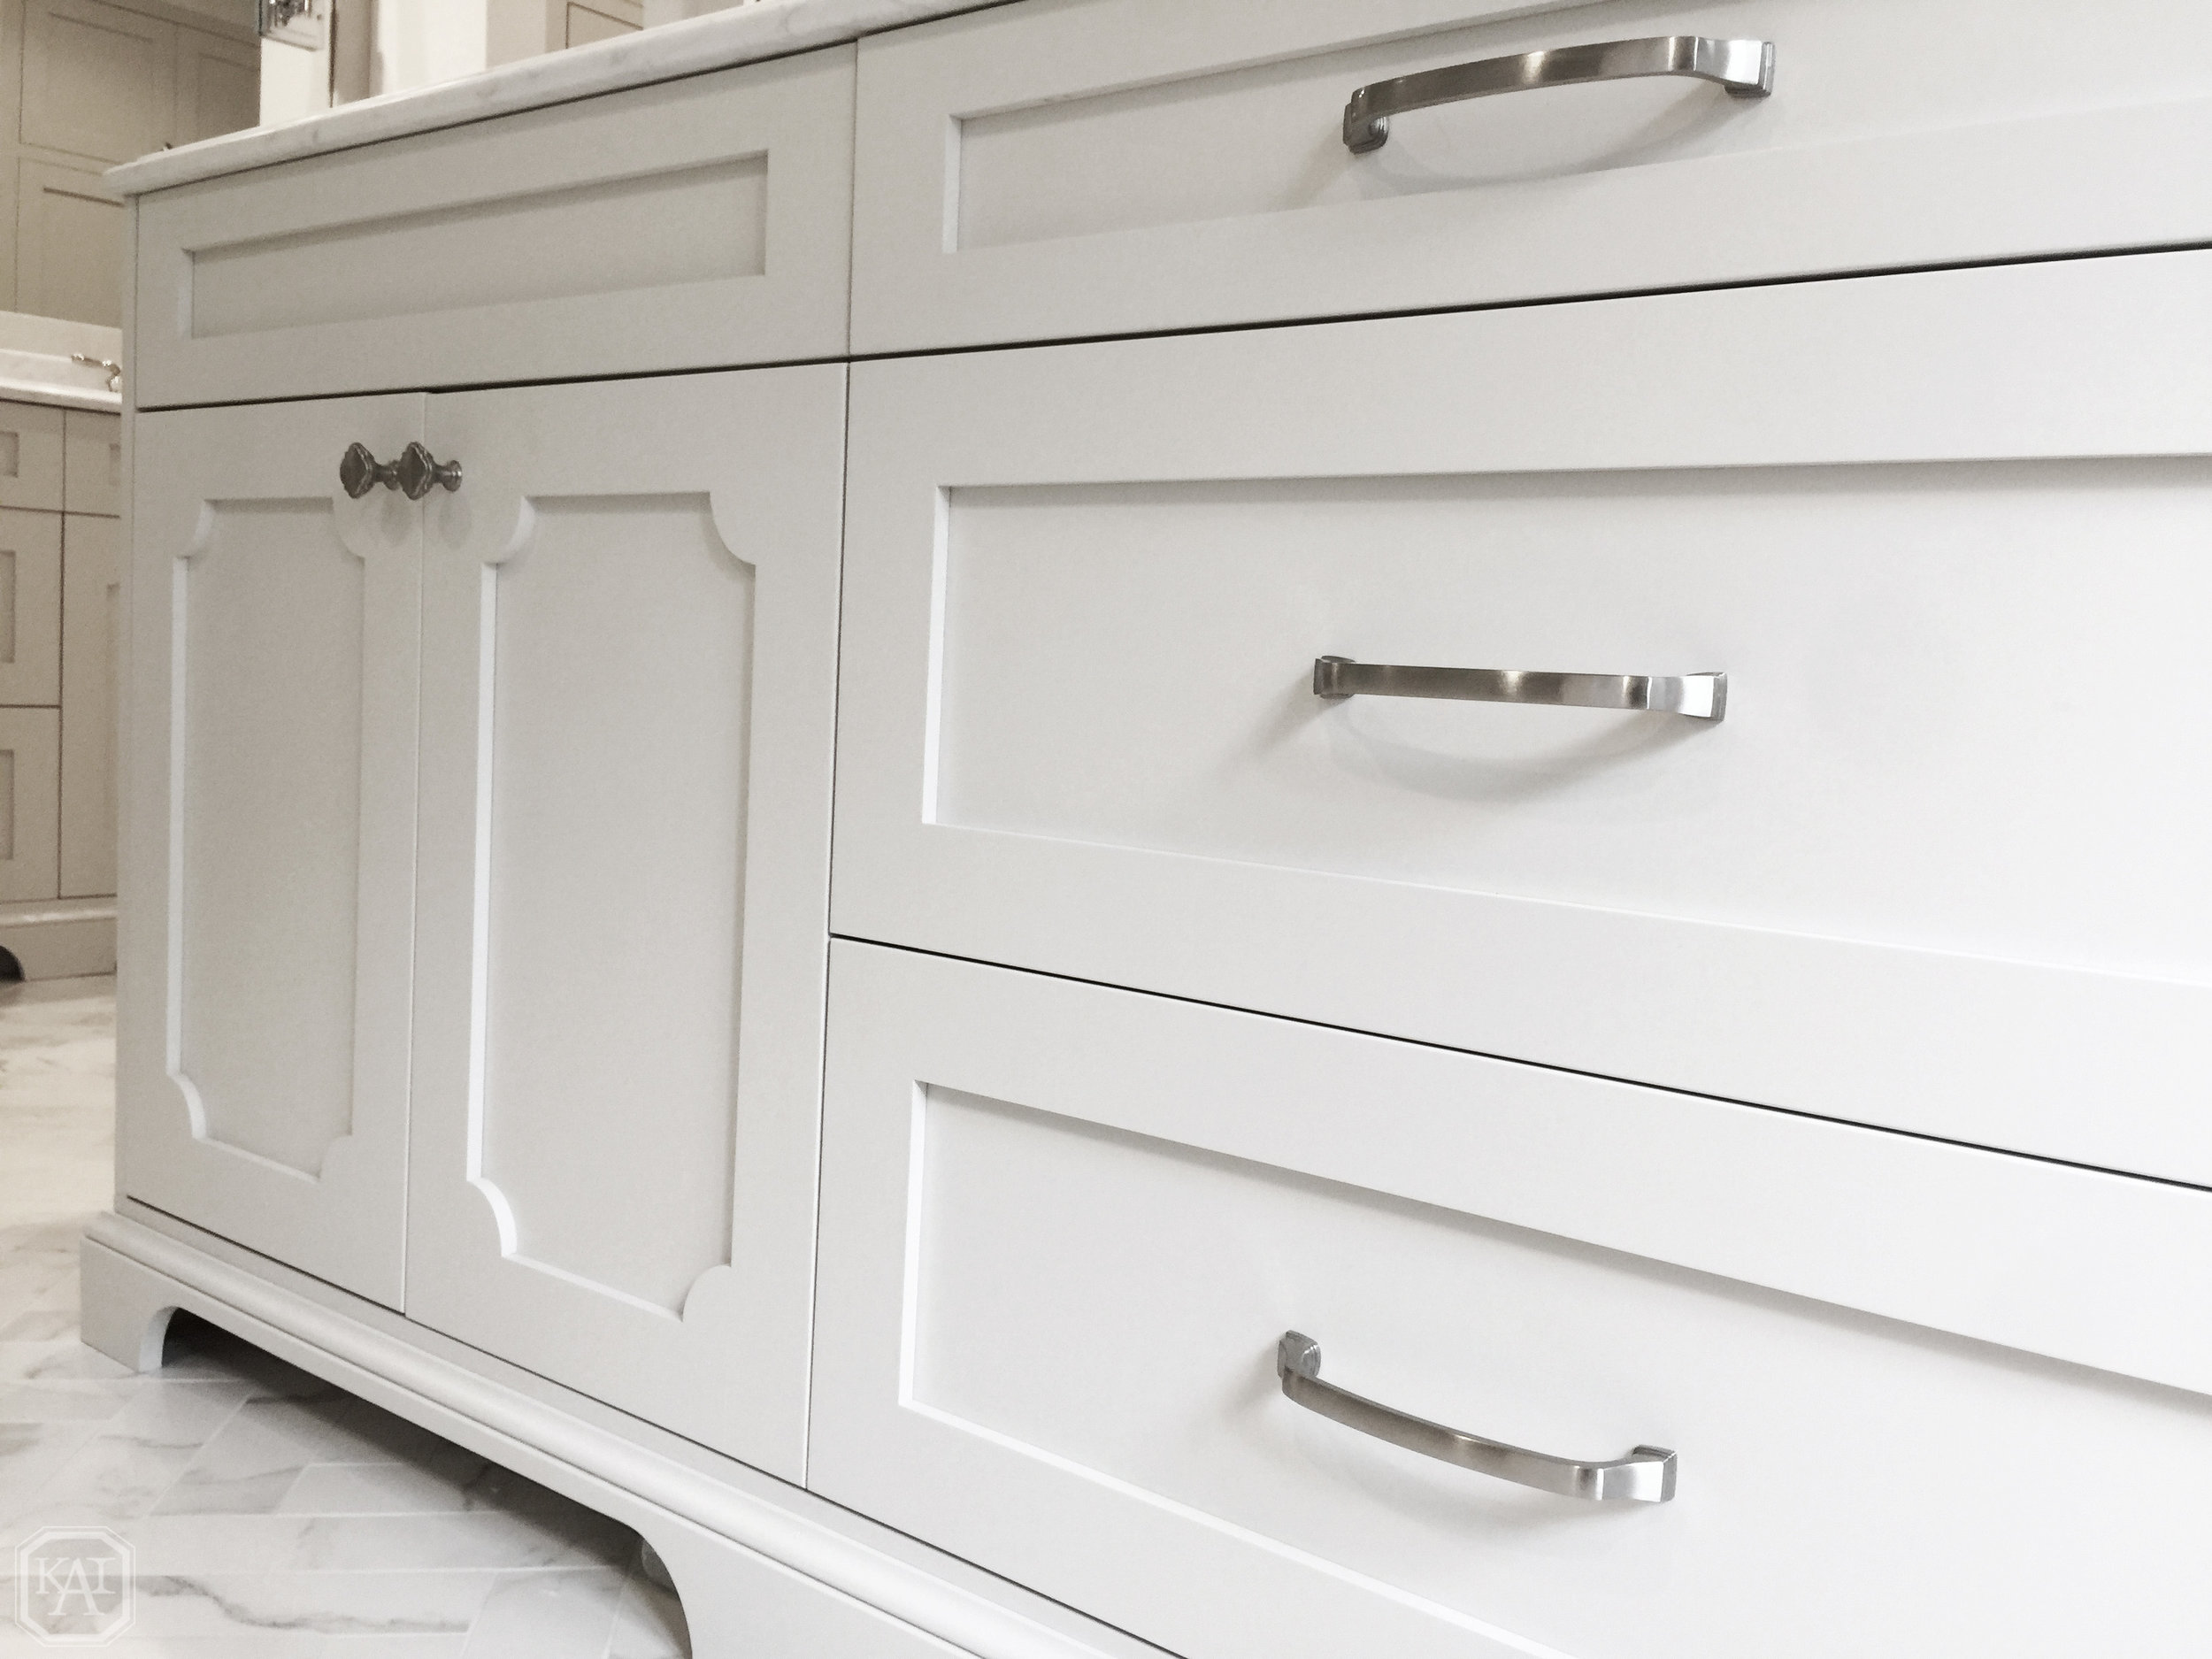 ZITELLA GIRLS BATHROOM VANITY CABINETRY ANGLE UP CLOSE_EDIT_IPHONE.jpg